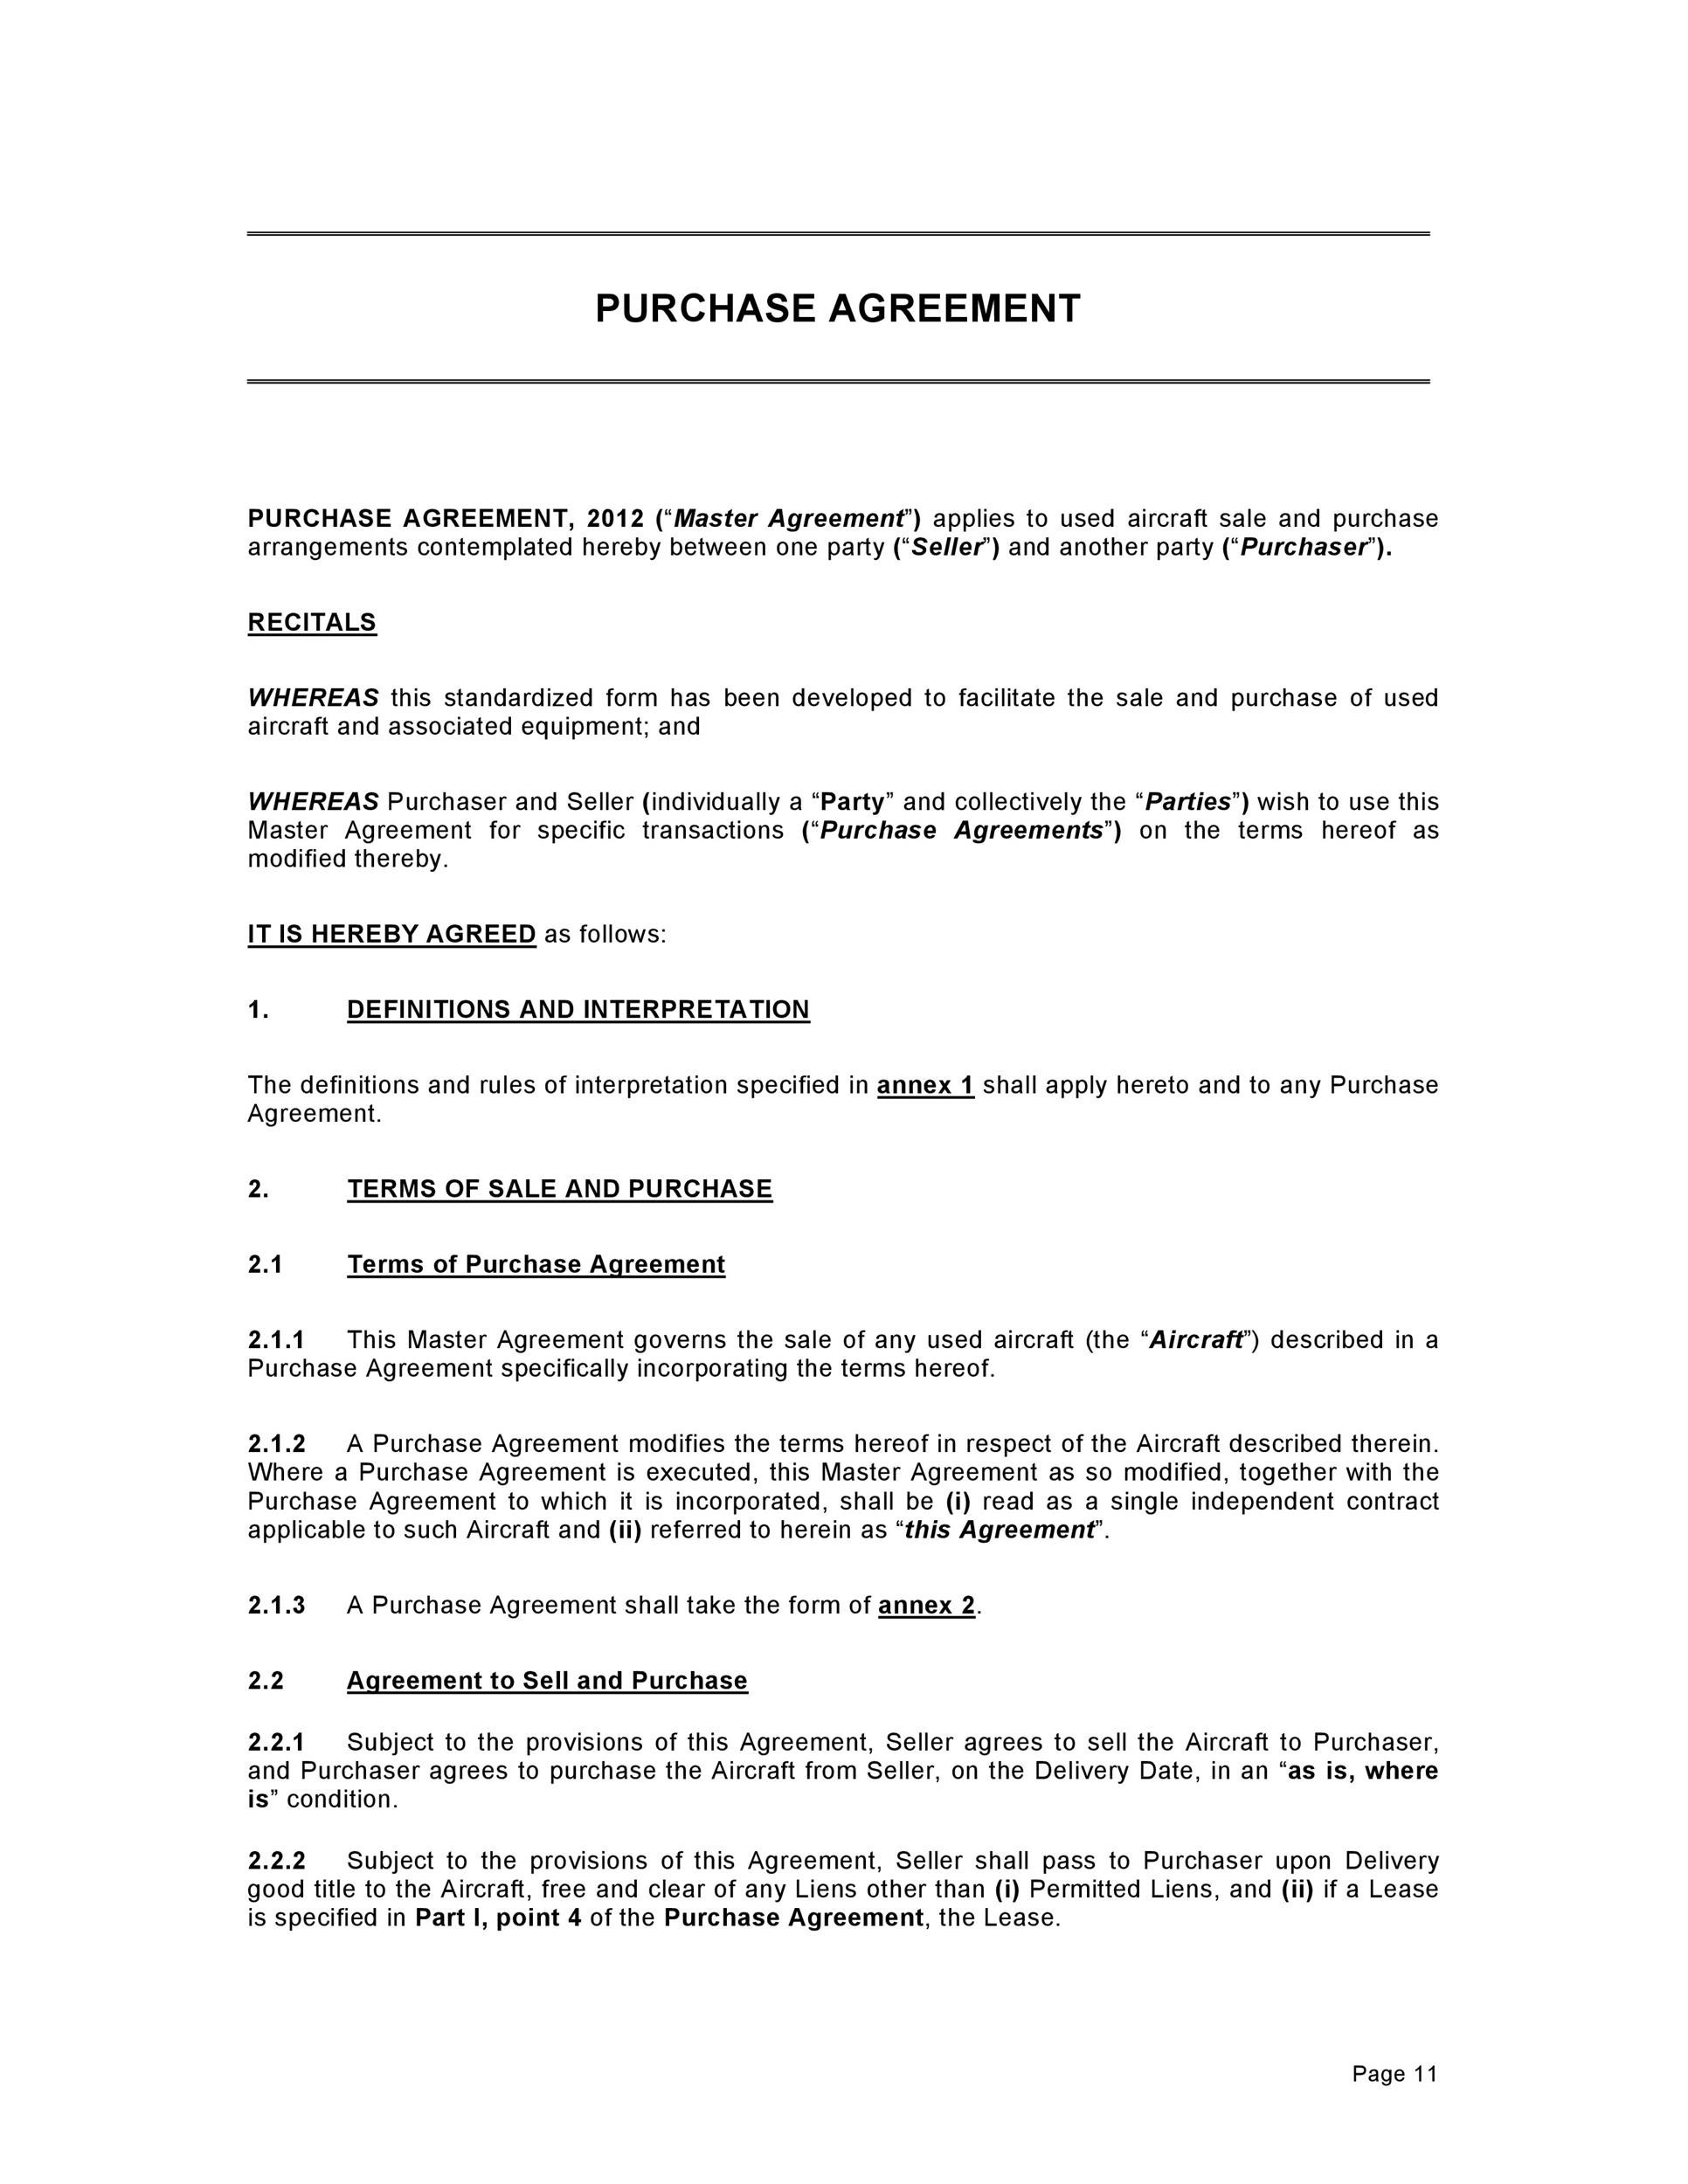 Business Agreement Form. Purchase Agreement Template 11 37 Simple